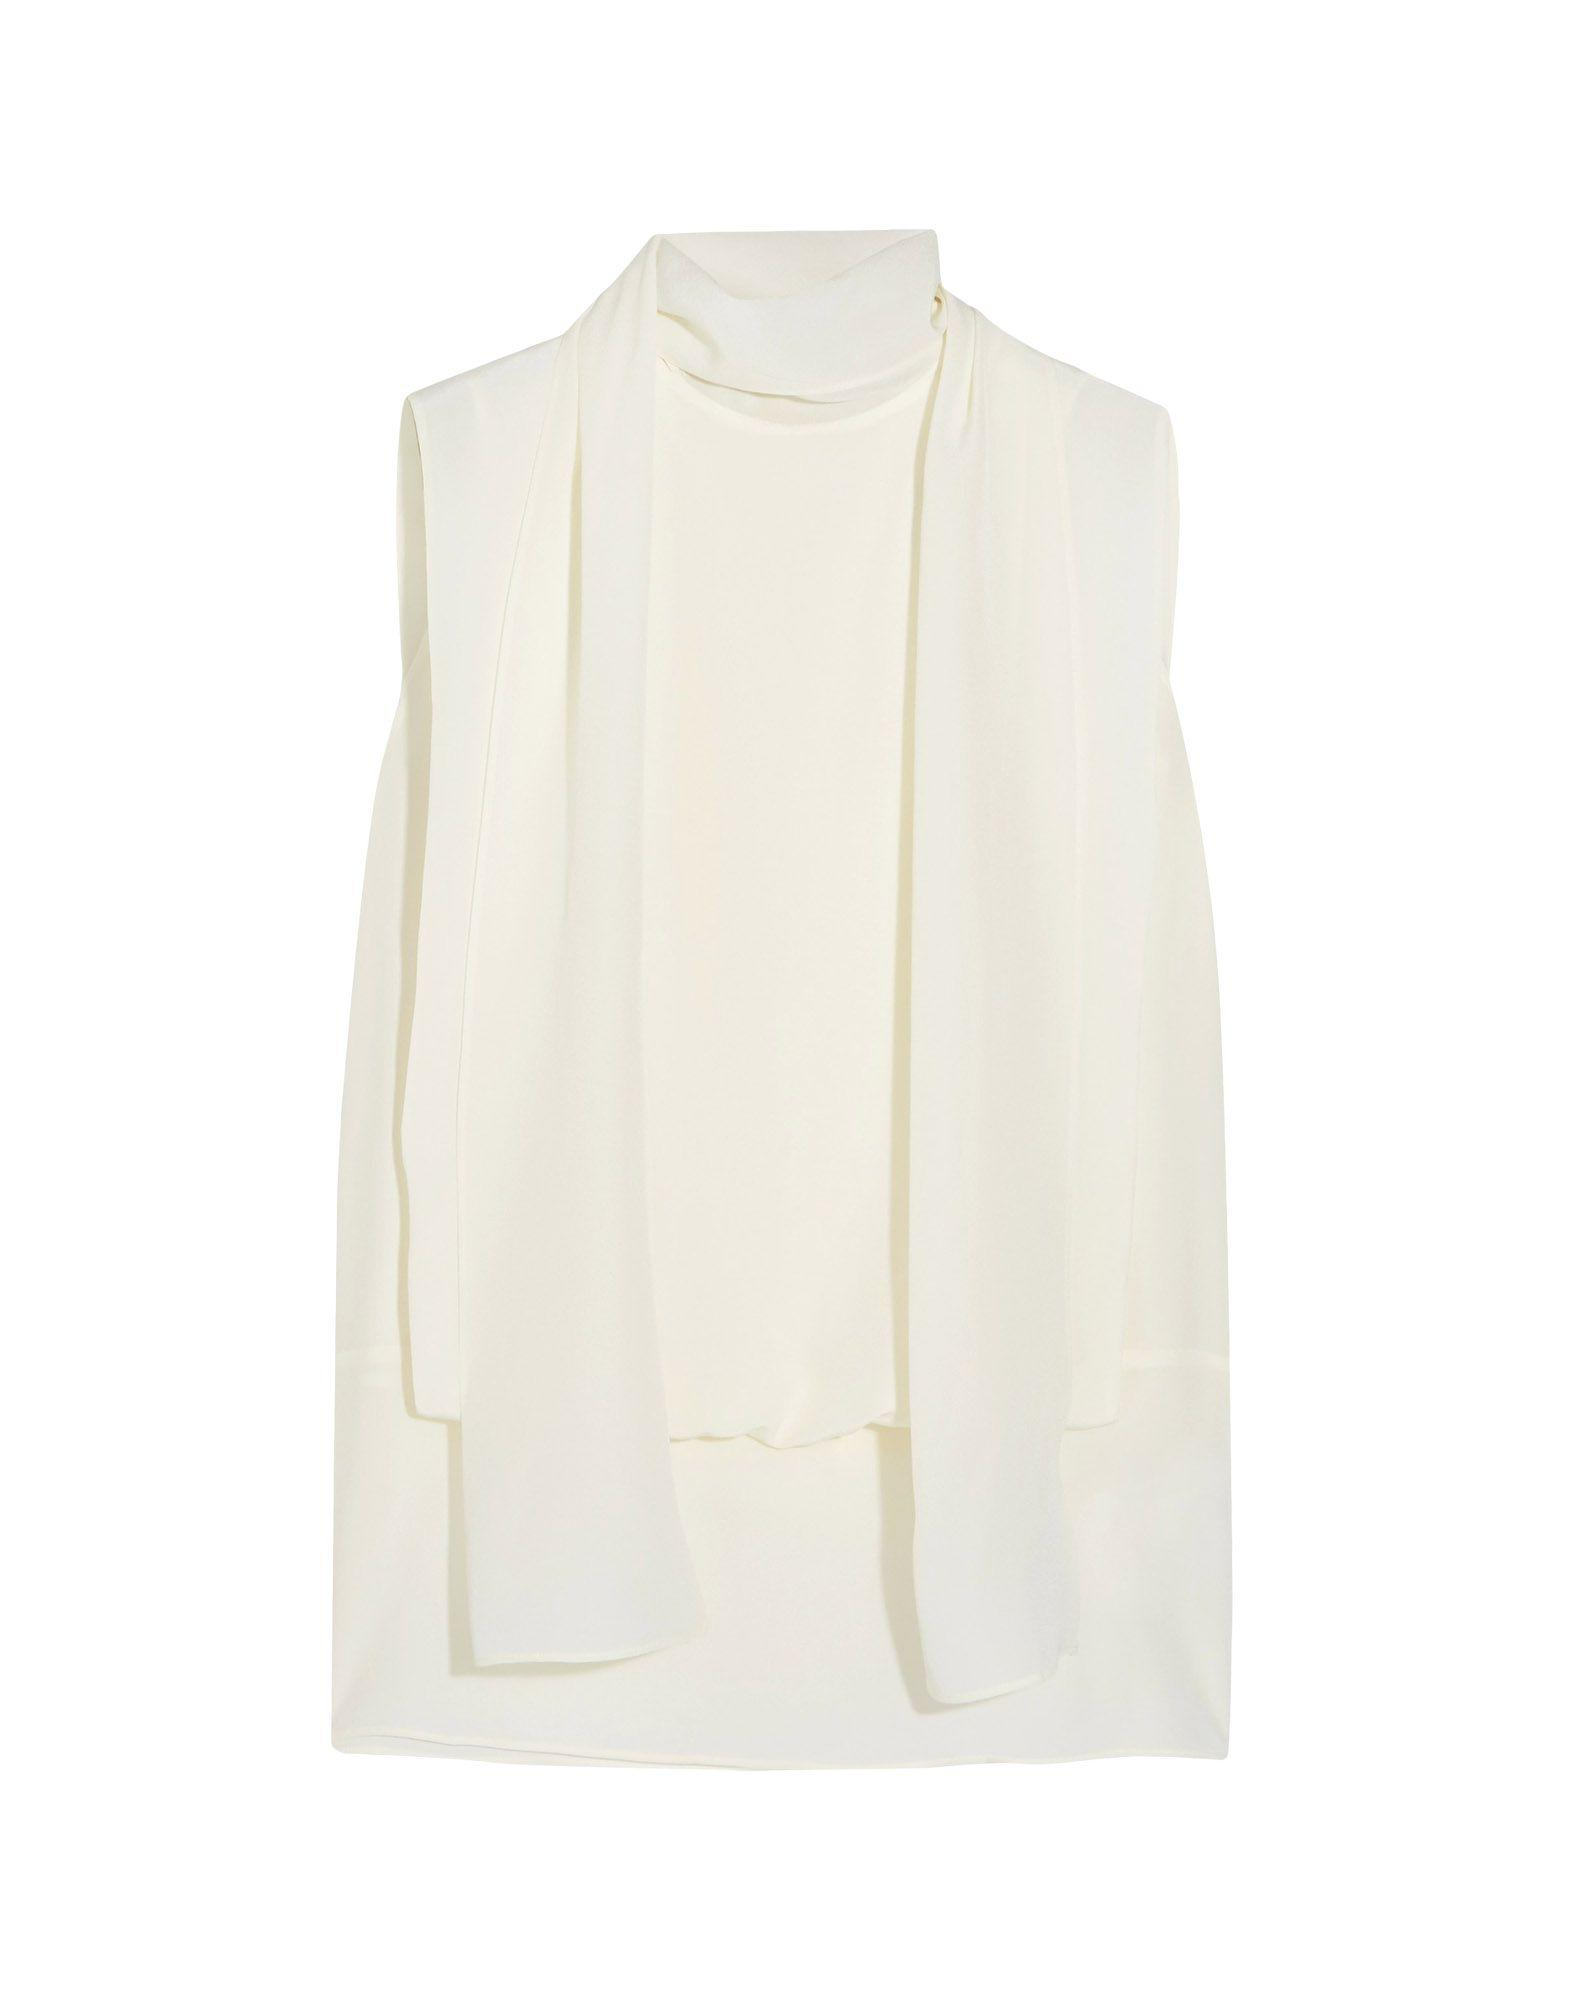 Valentino Silk Top In Ivory